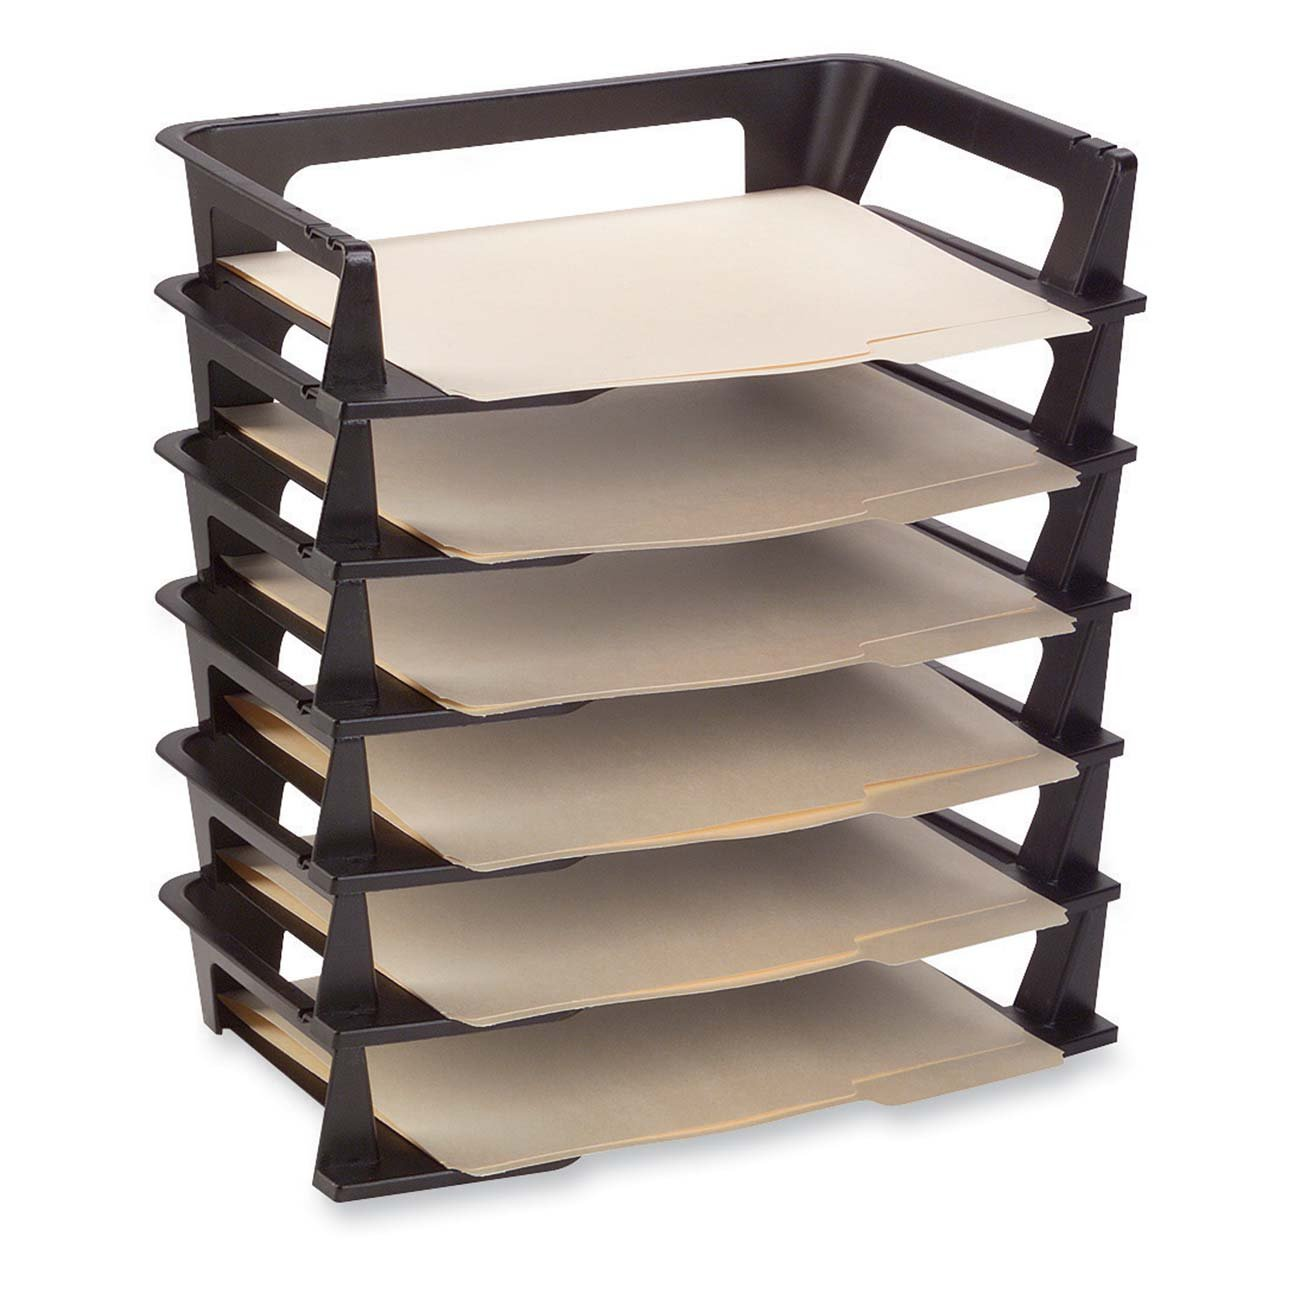 Plastic letter a4 office tray 6 pack stackable shelf - Desk drawer paper organizer ...